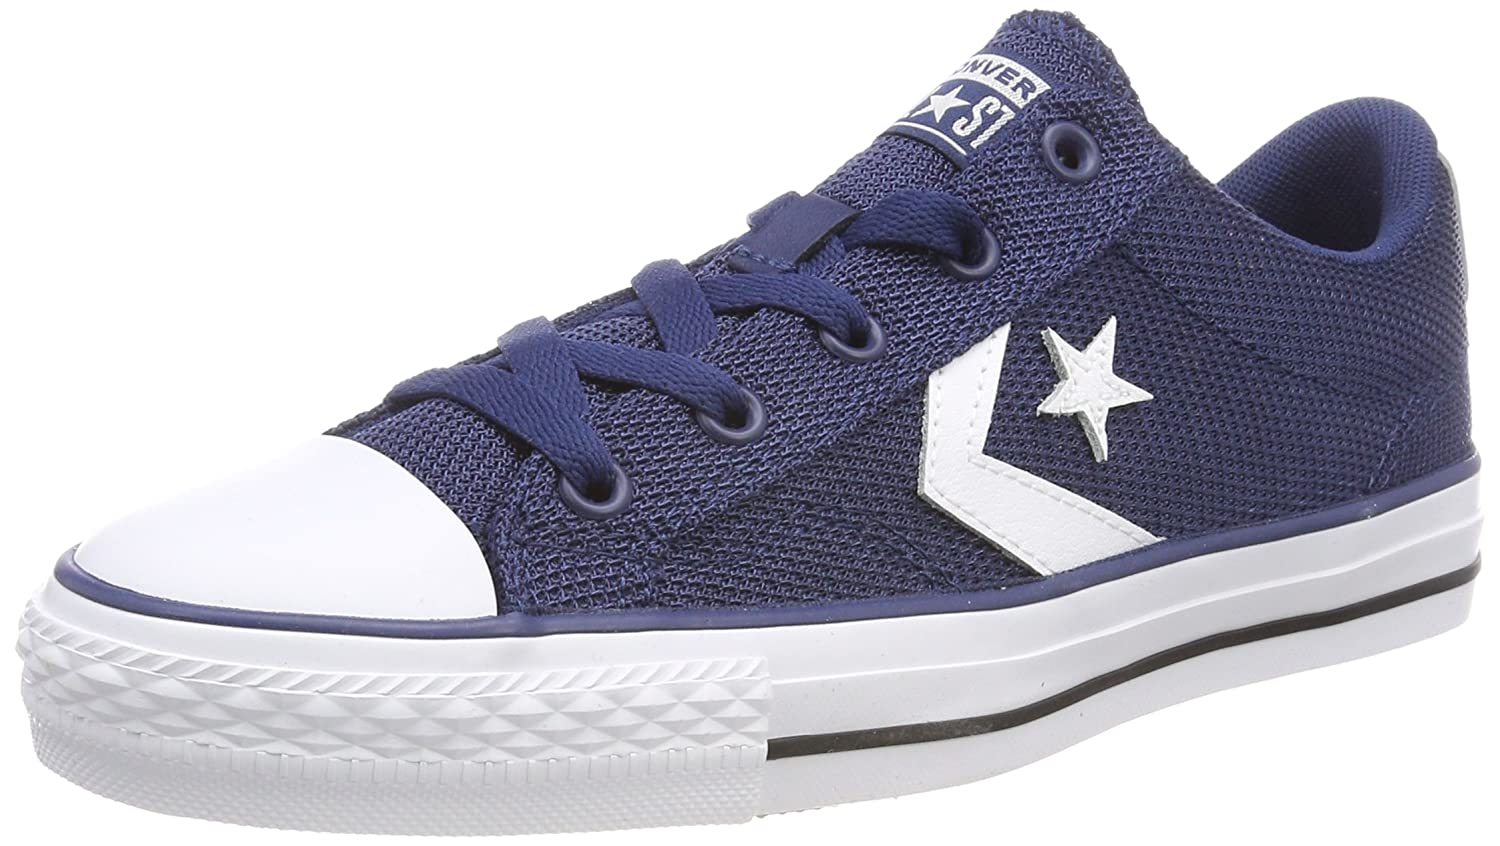 TALLA 48 EU. Converse Star Player Ox Navy/White/Black, Zapatillas Unisex Adulto